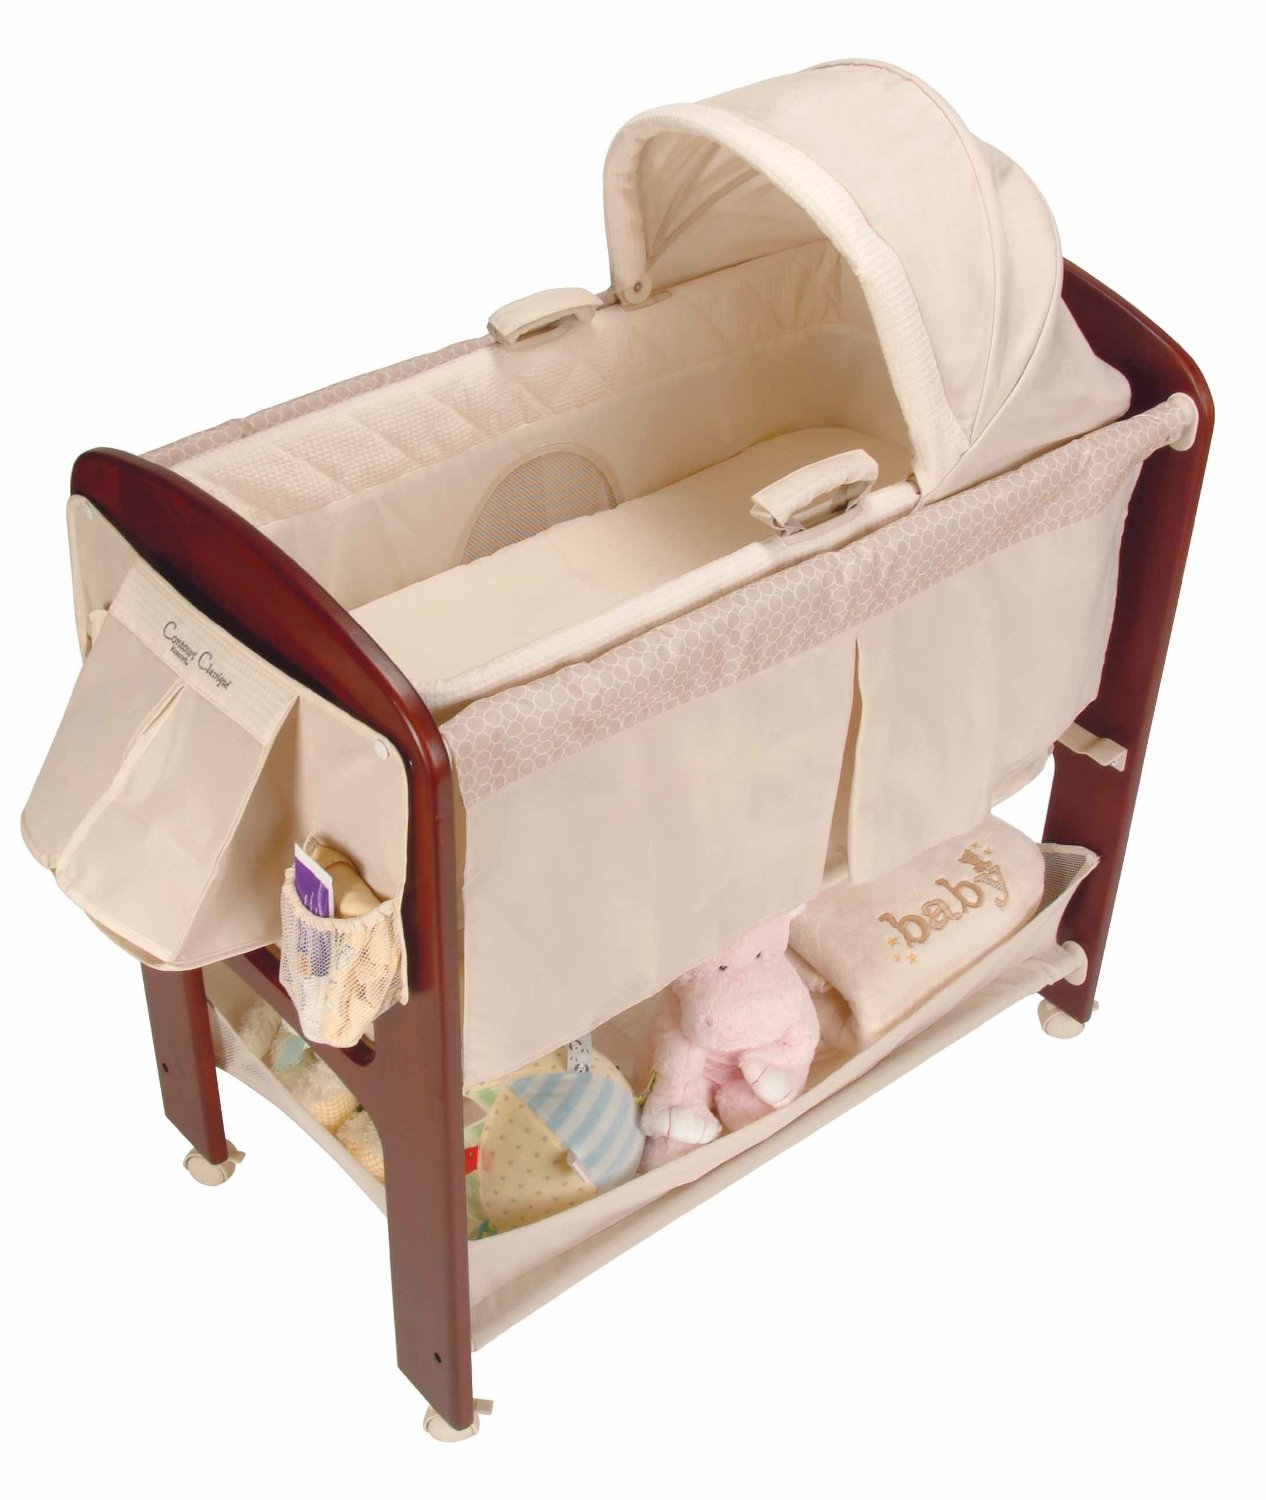 Contours Classique 3-in-1 Bassinet with Wooden Frame